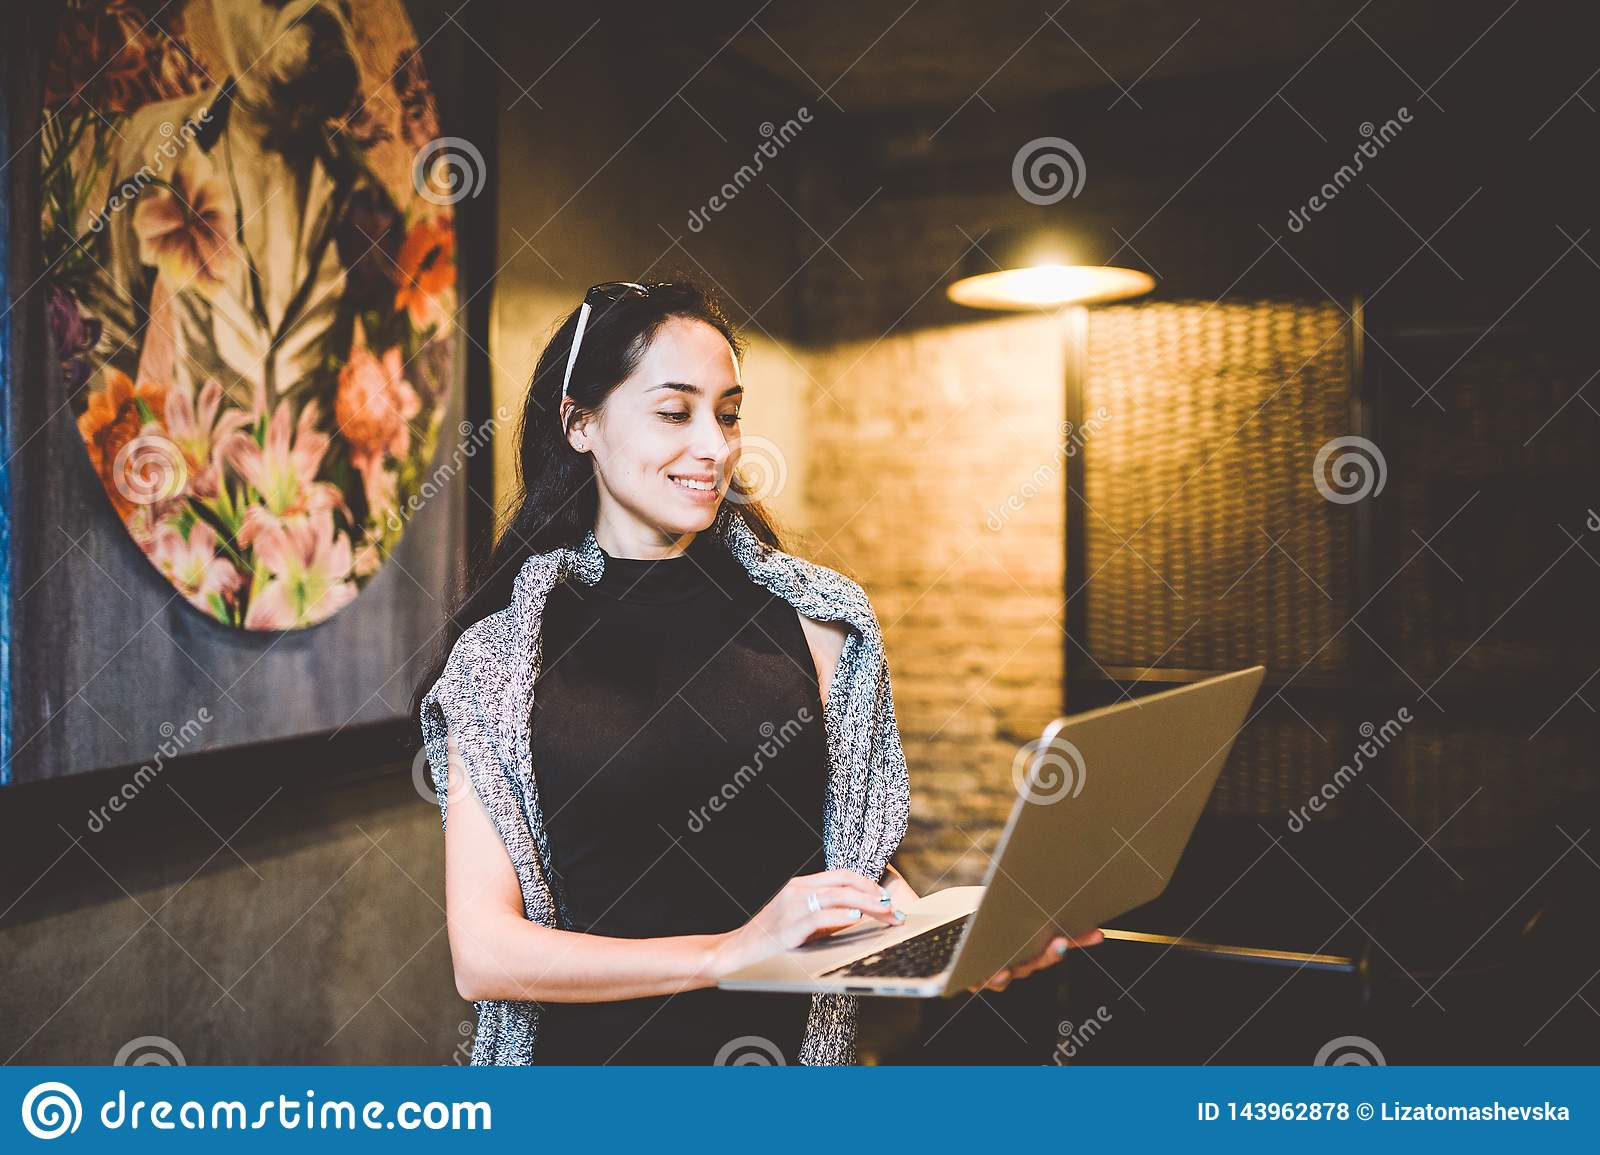 The concept of small business and technology. Young beautiful brunette businesswoman in black dress and gray sweater stands in